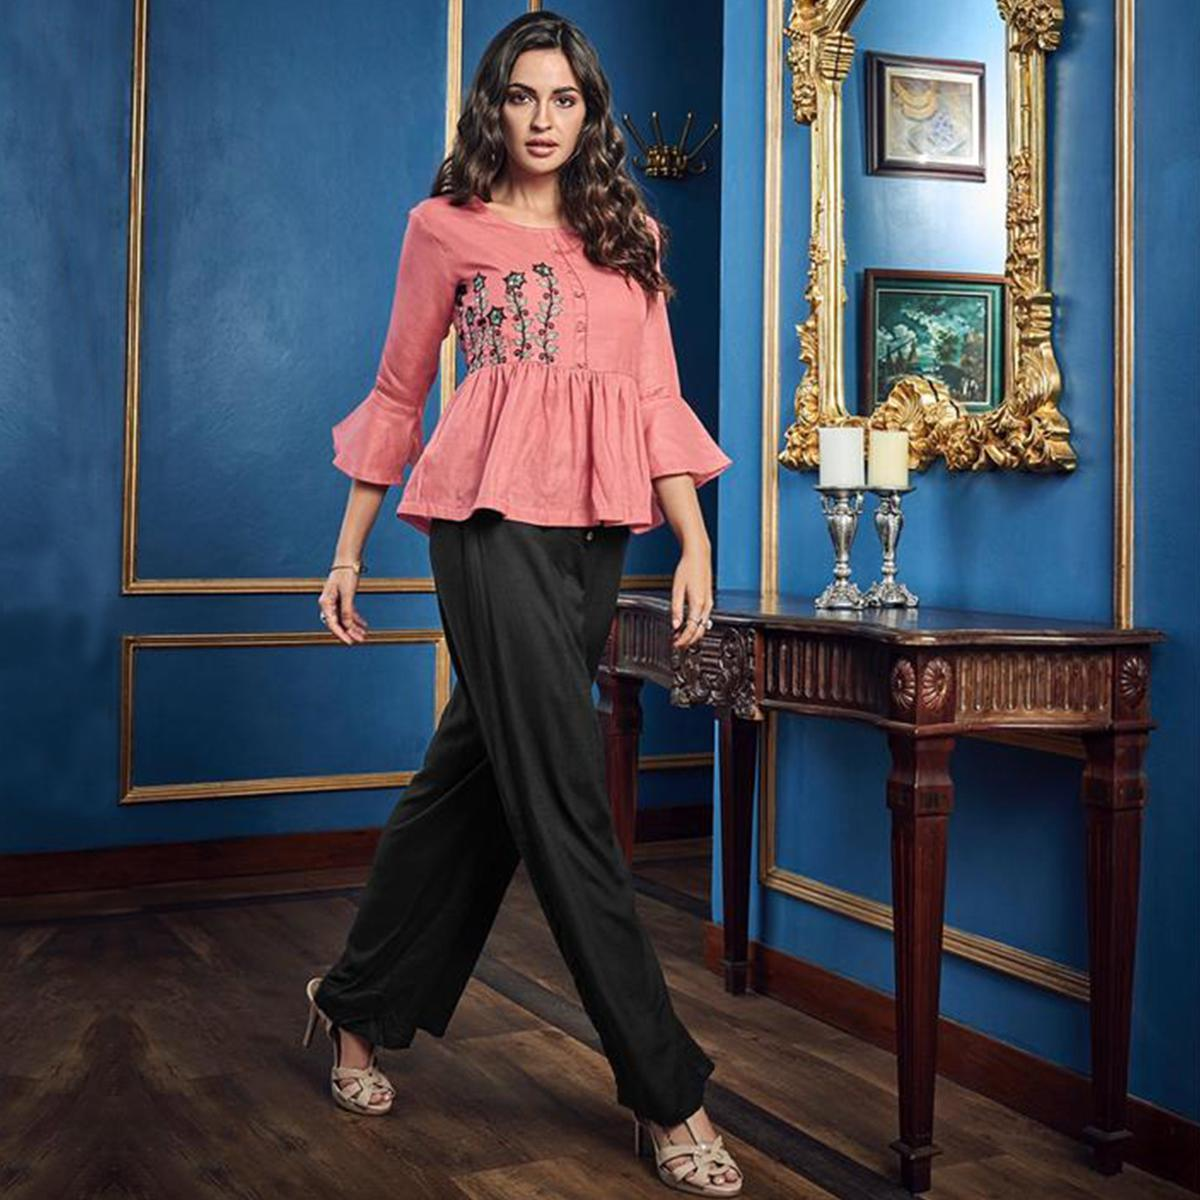 Desirable Pink-Black Colored Casual Wear Floral Embroidered Cotton-Rayon Top-Palazzo Set